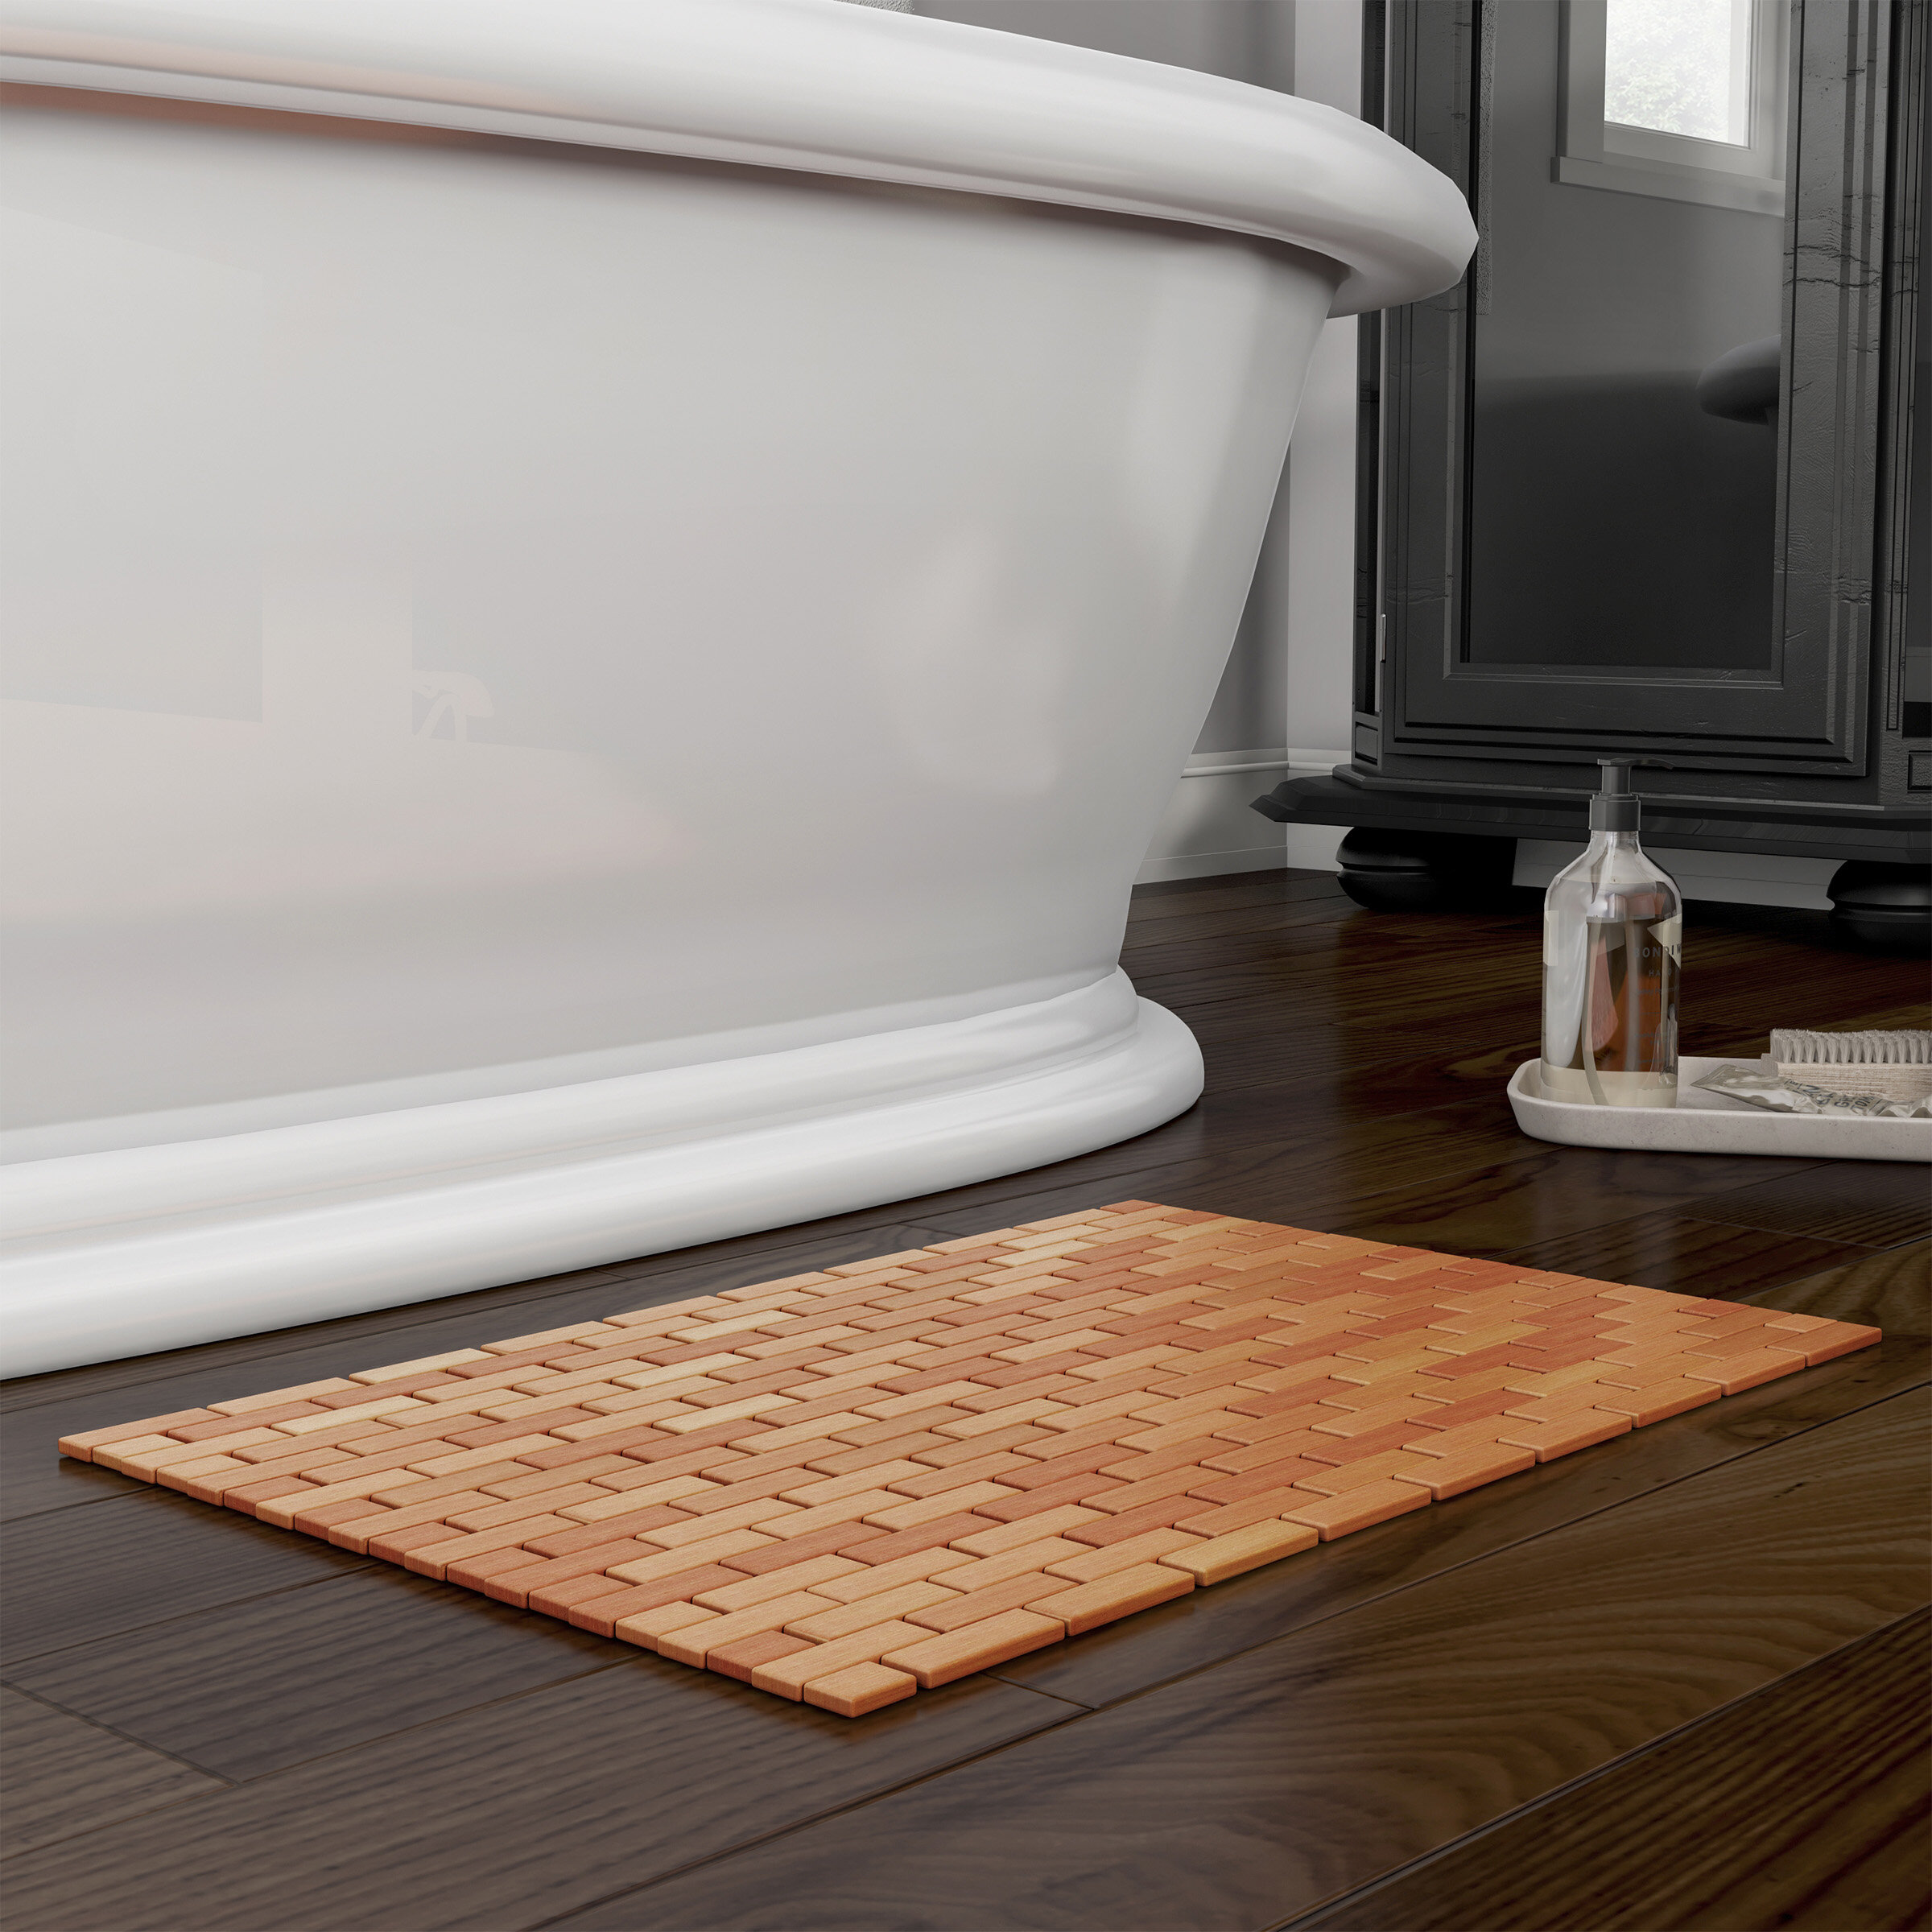 Bamboo Bath Mat Luxury Super Soft Natural Cotton Anti Bacterial Bathroom Mats